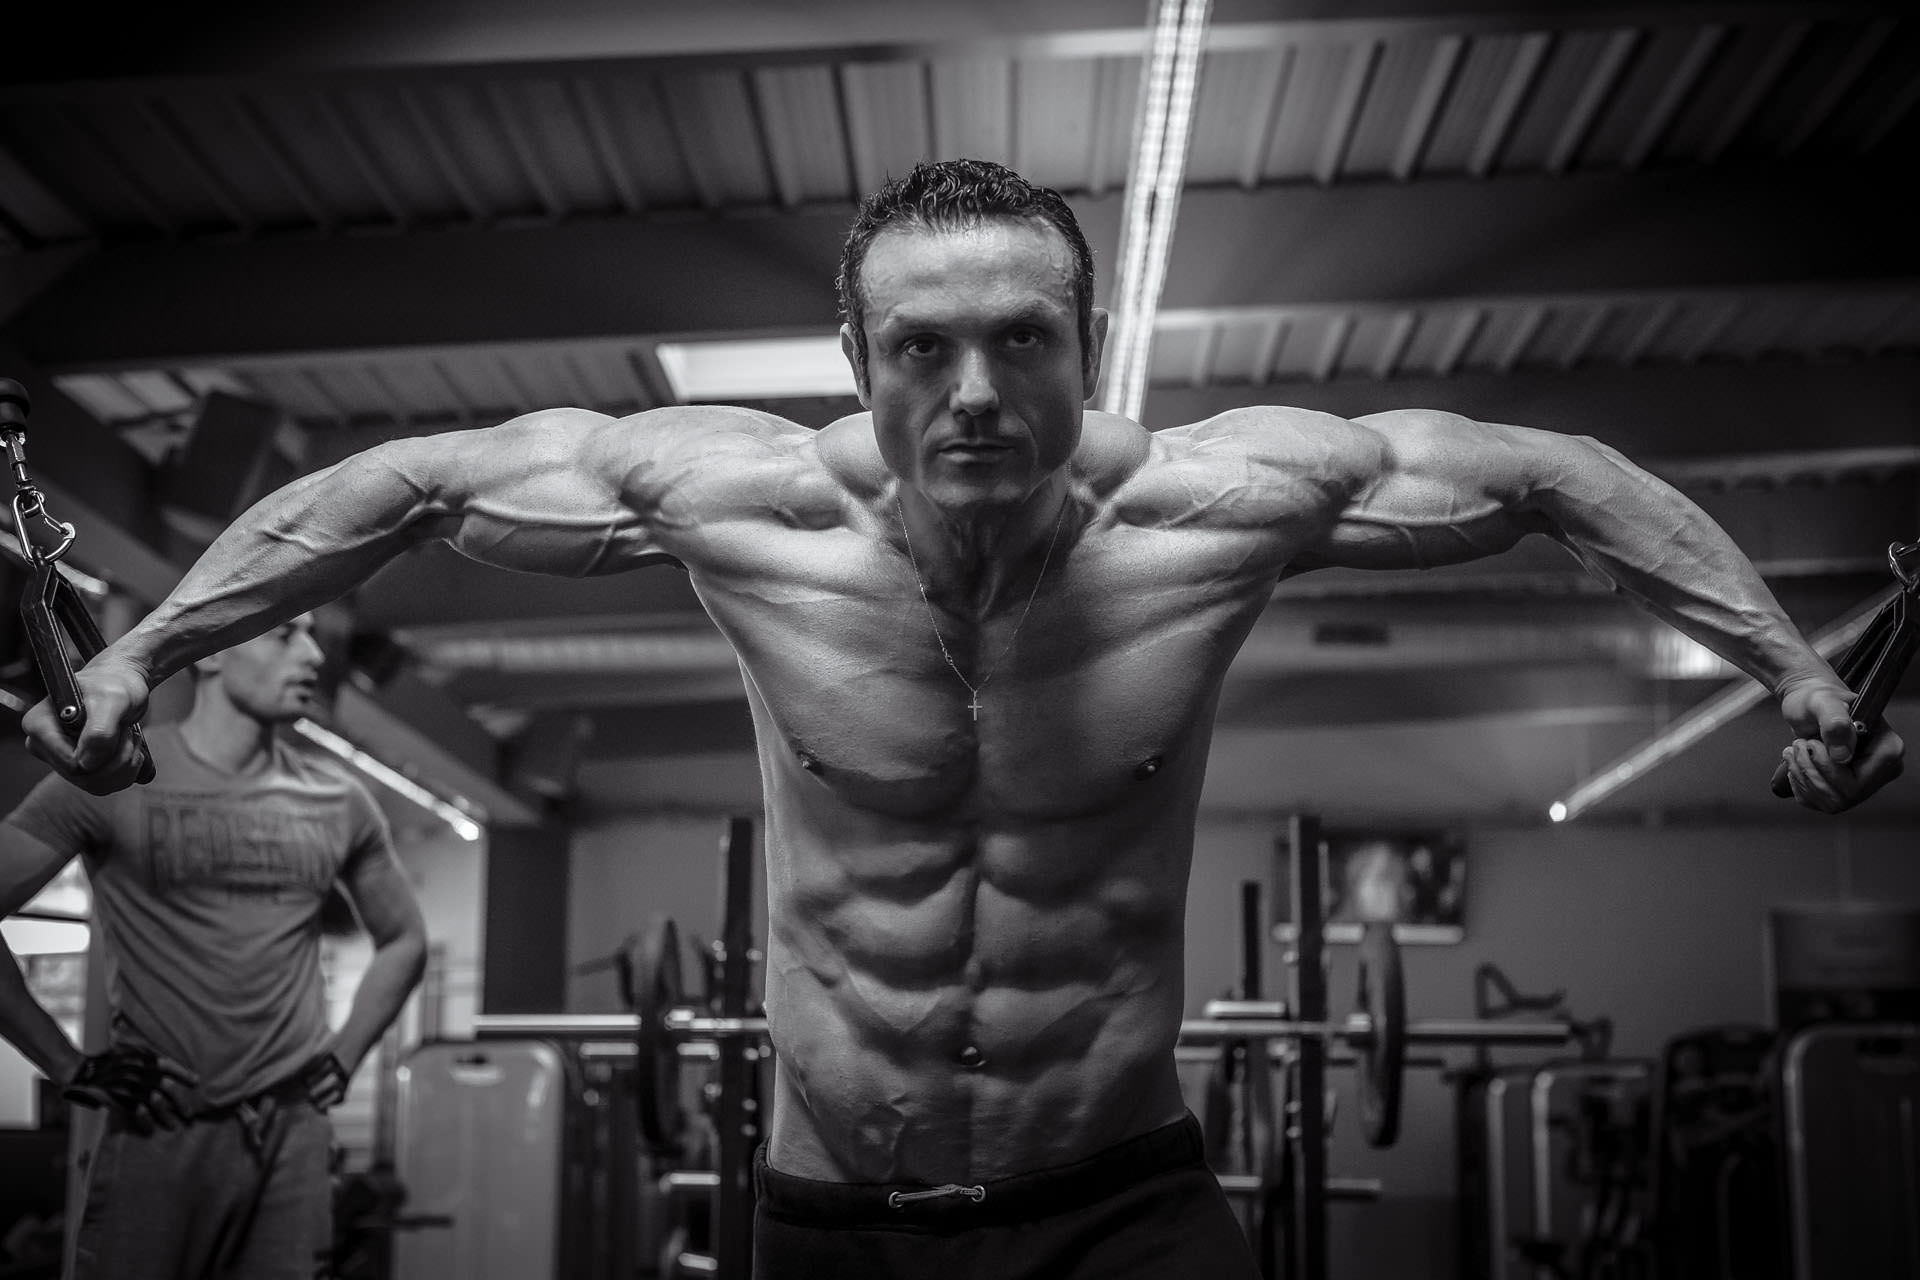 2017-02-24 - Enzo Foukra - MyMuscle - FitnessPark - 4361 - 1920px